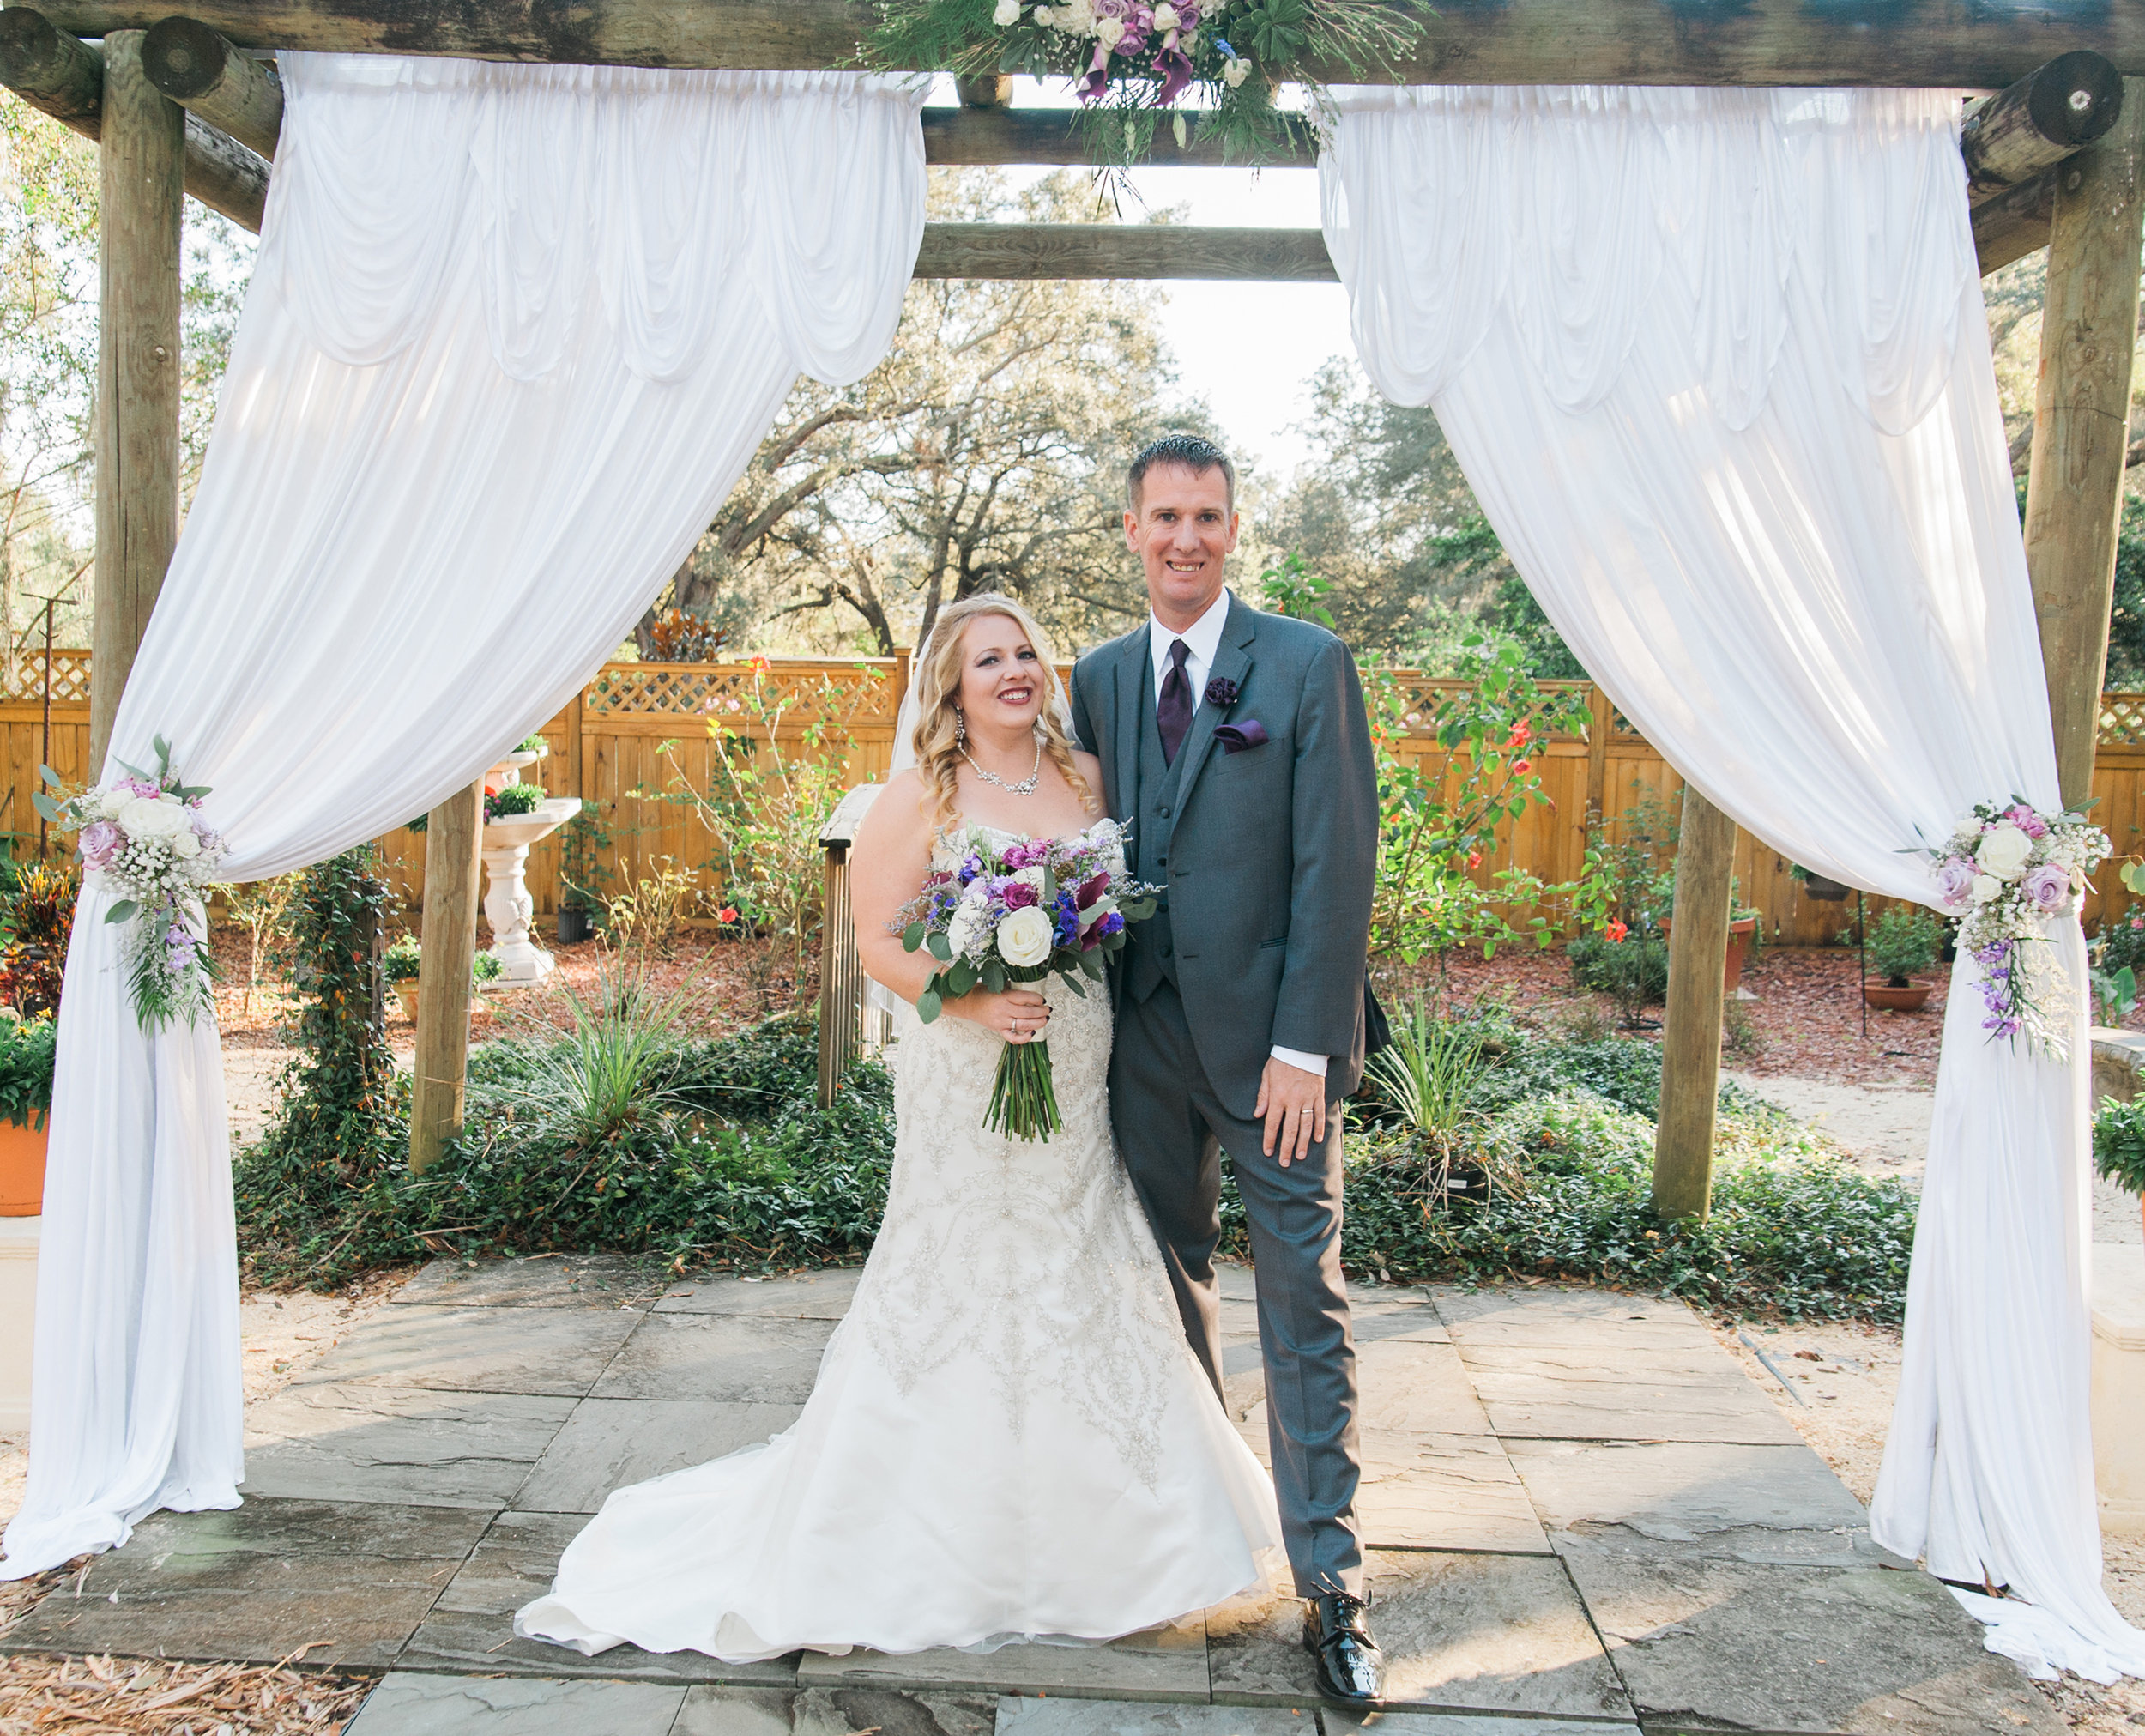 Following the destruction of Hurricane Irma in 2017, after initially having to postpone their wedding. Jonathan and Courtney tied the knot in November that year.